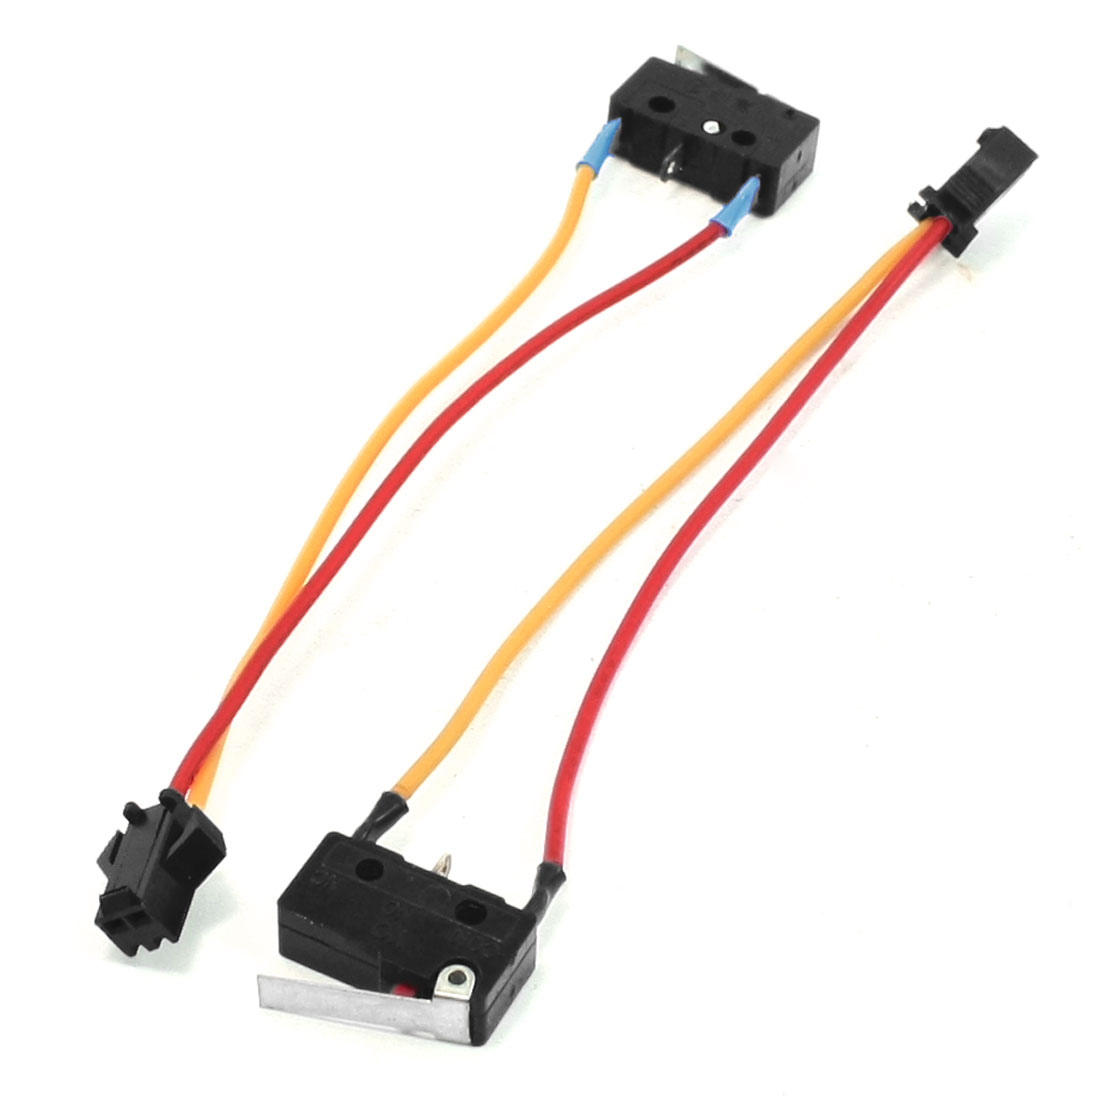 3A 250VAC 2 Wire Ignition Control SPST NO+NC Gas Heater Micro Switch 2 Pcs